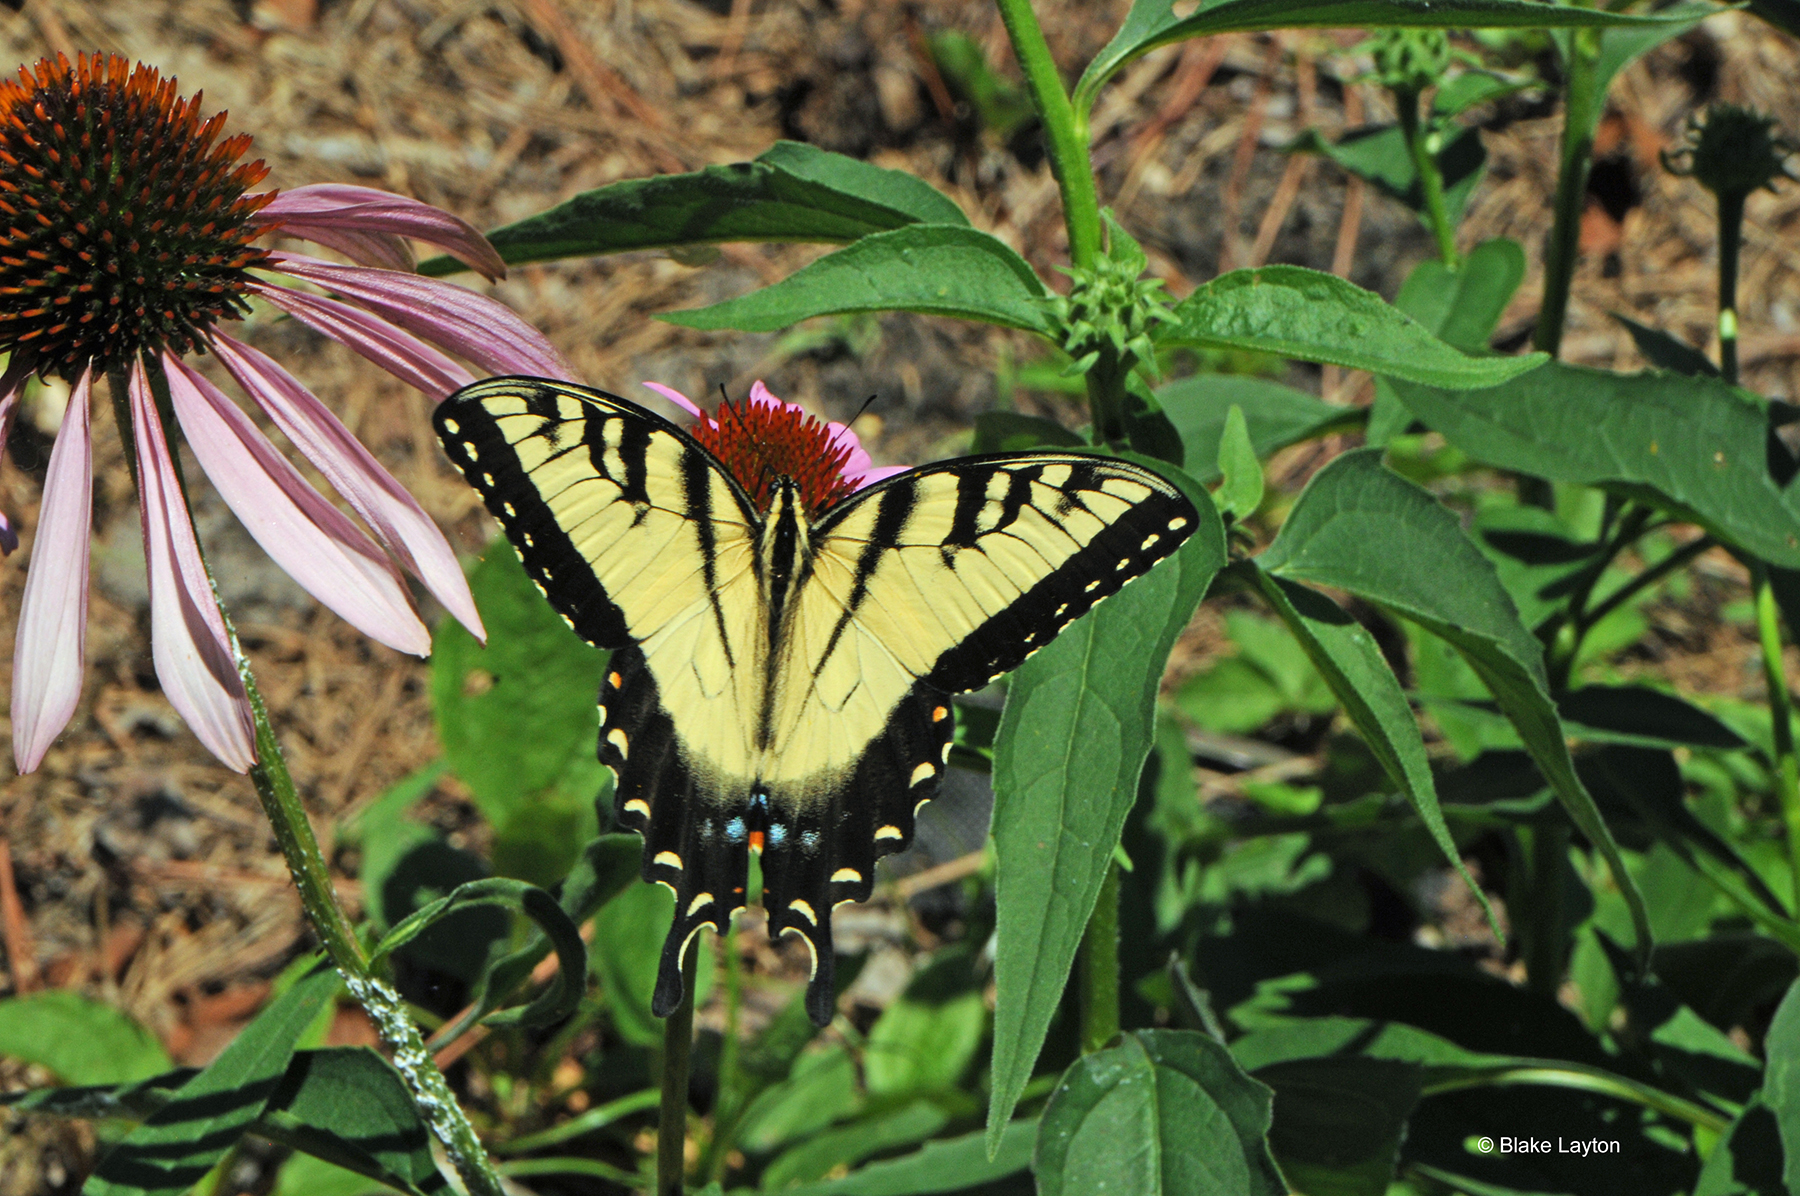 A yellow and black butterfly rests on purple flowers.